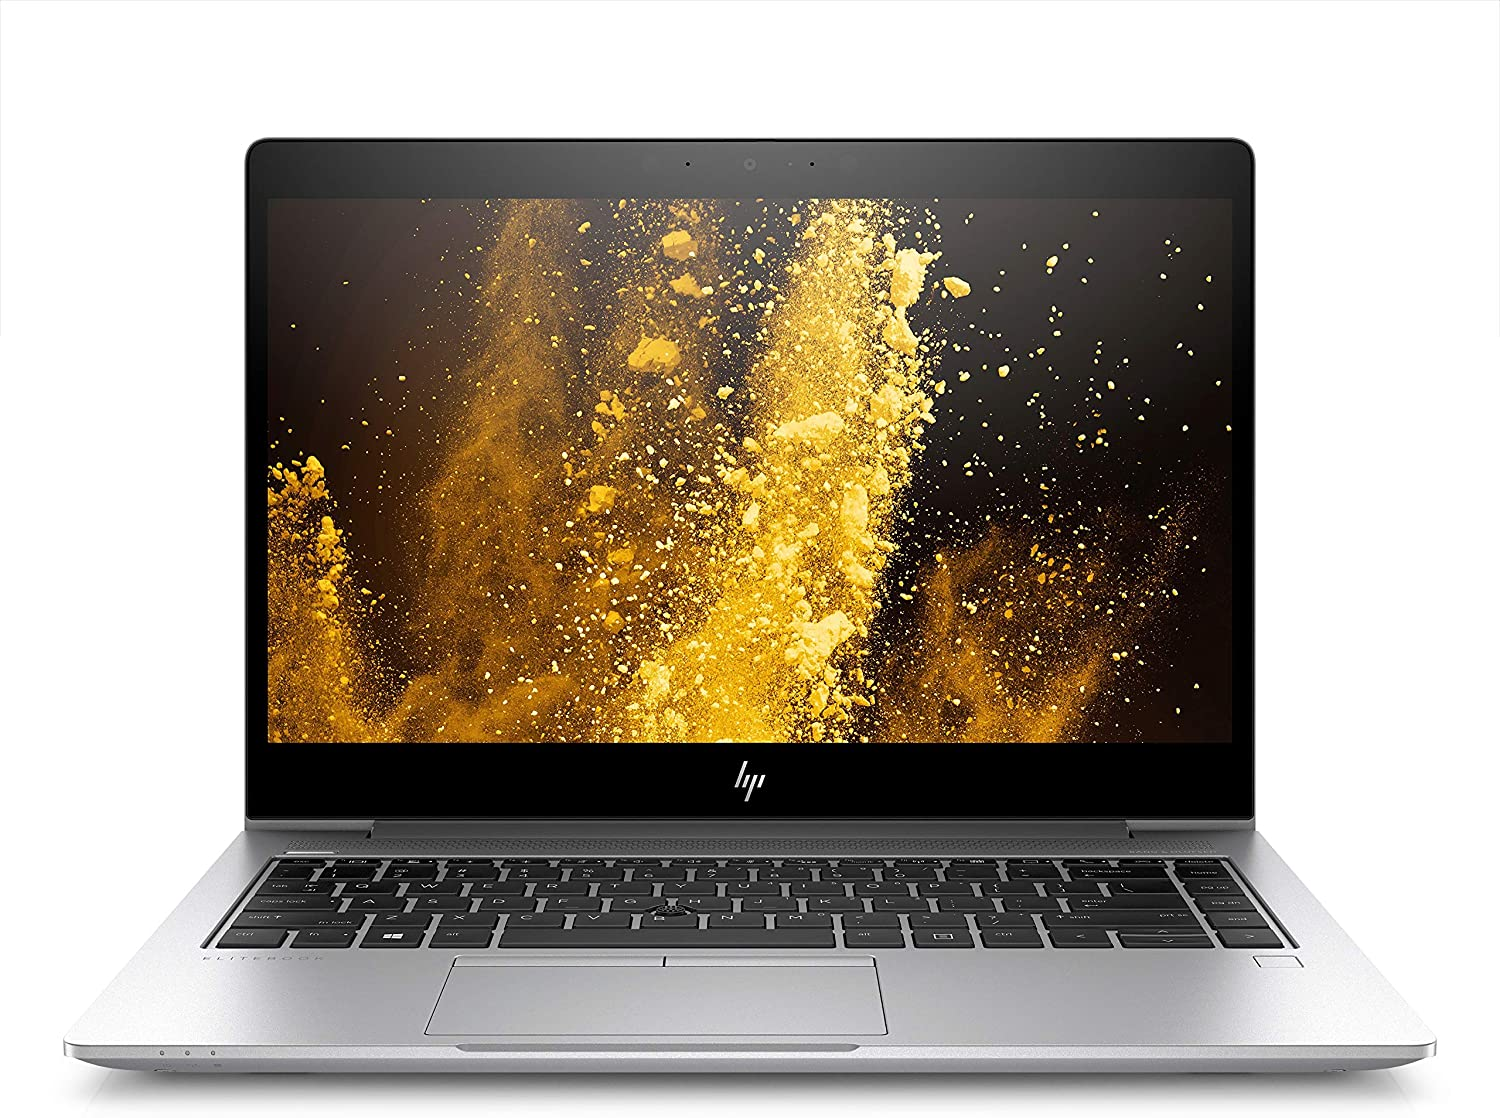 "HP EliteBook 840 G6 14"" Touchscreen Notebook - 1920 x 1080 - Core i7 i7-8665U - 16 GB RAM - 32 GB Optane Memory - 512 GB SSD - Windows 10 Pro 64-bit - Intel UHD Graphics 620 - in-Plane Switching"